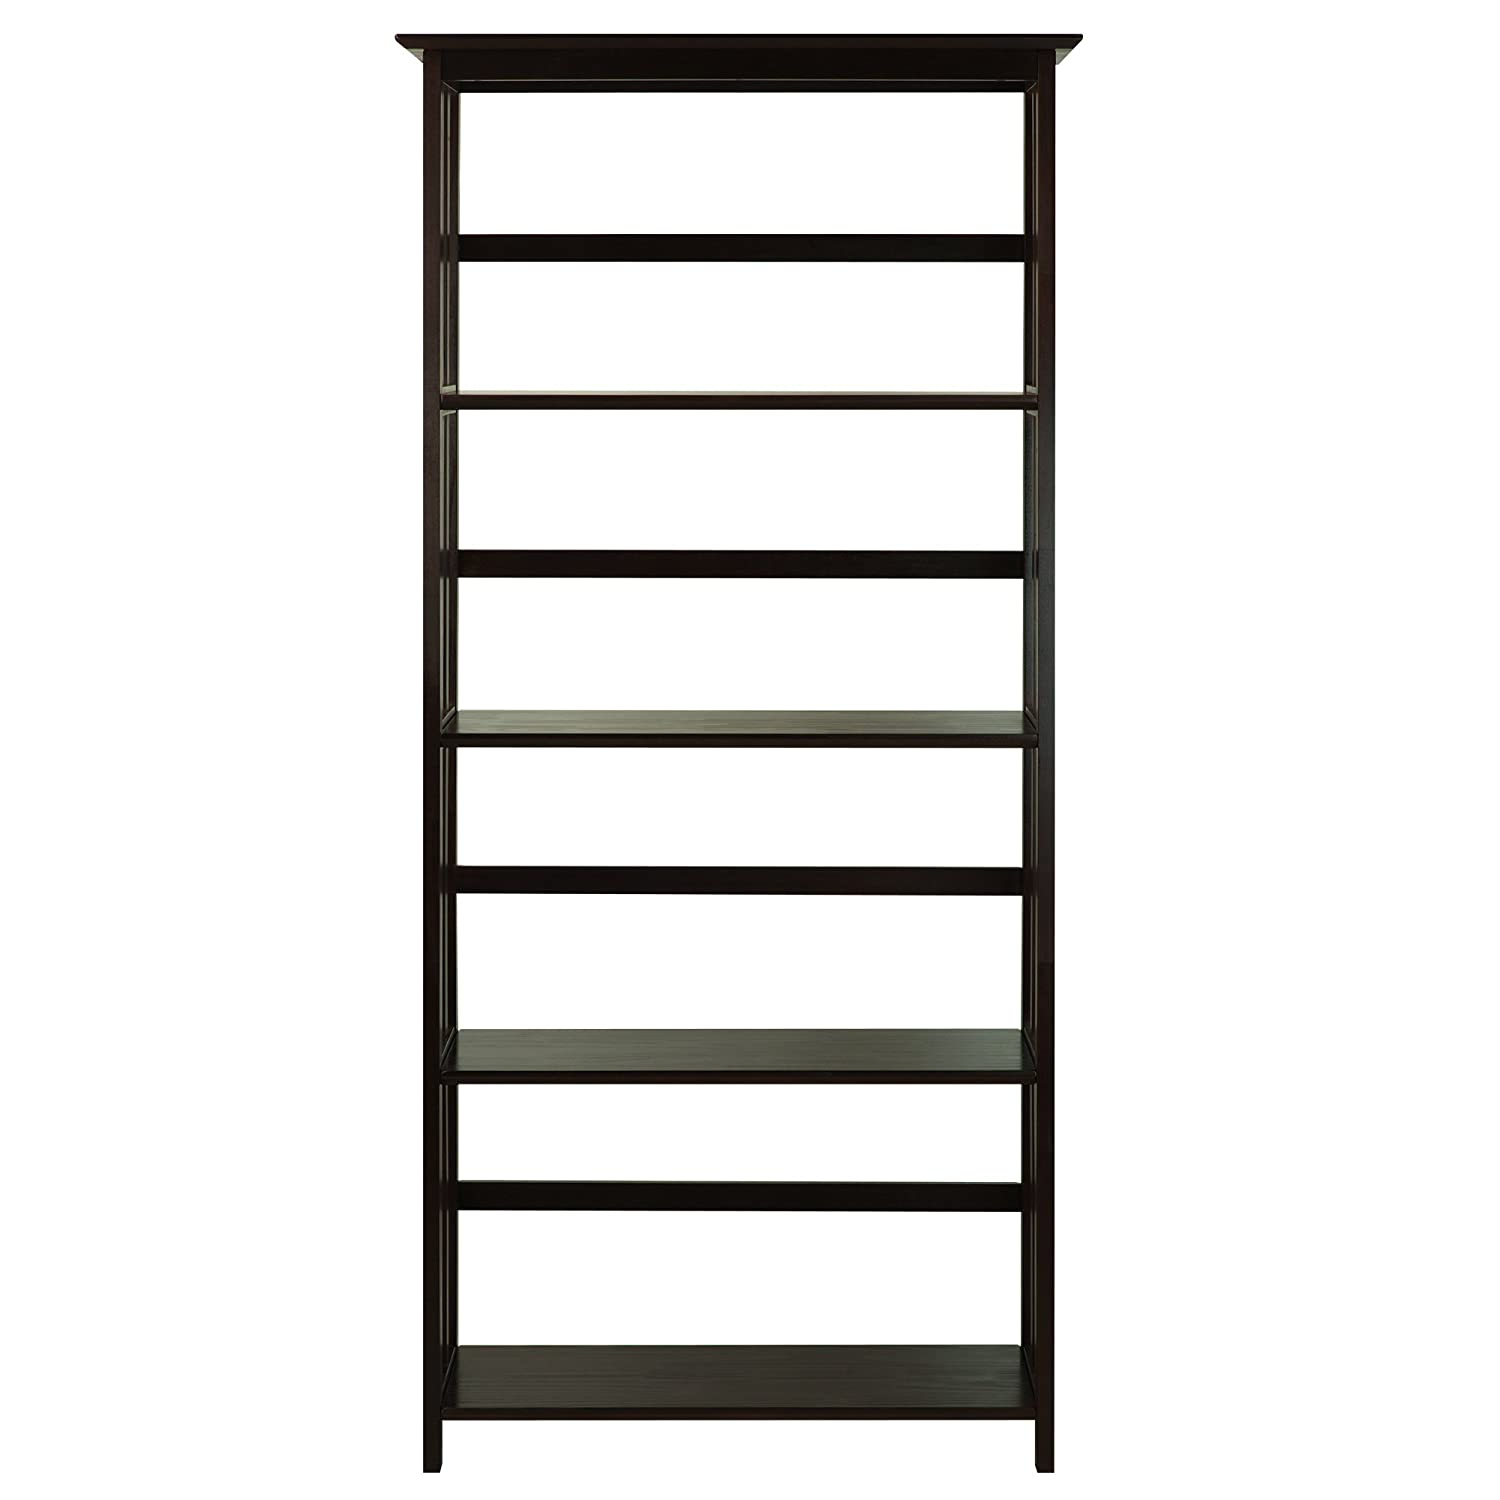 Amazon casual home mission style 5 shelf bookcase espresso amazon casual home mission style 5 shelf bookcase espresso kitchen dining amipublicfo Image collections